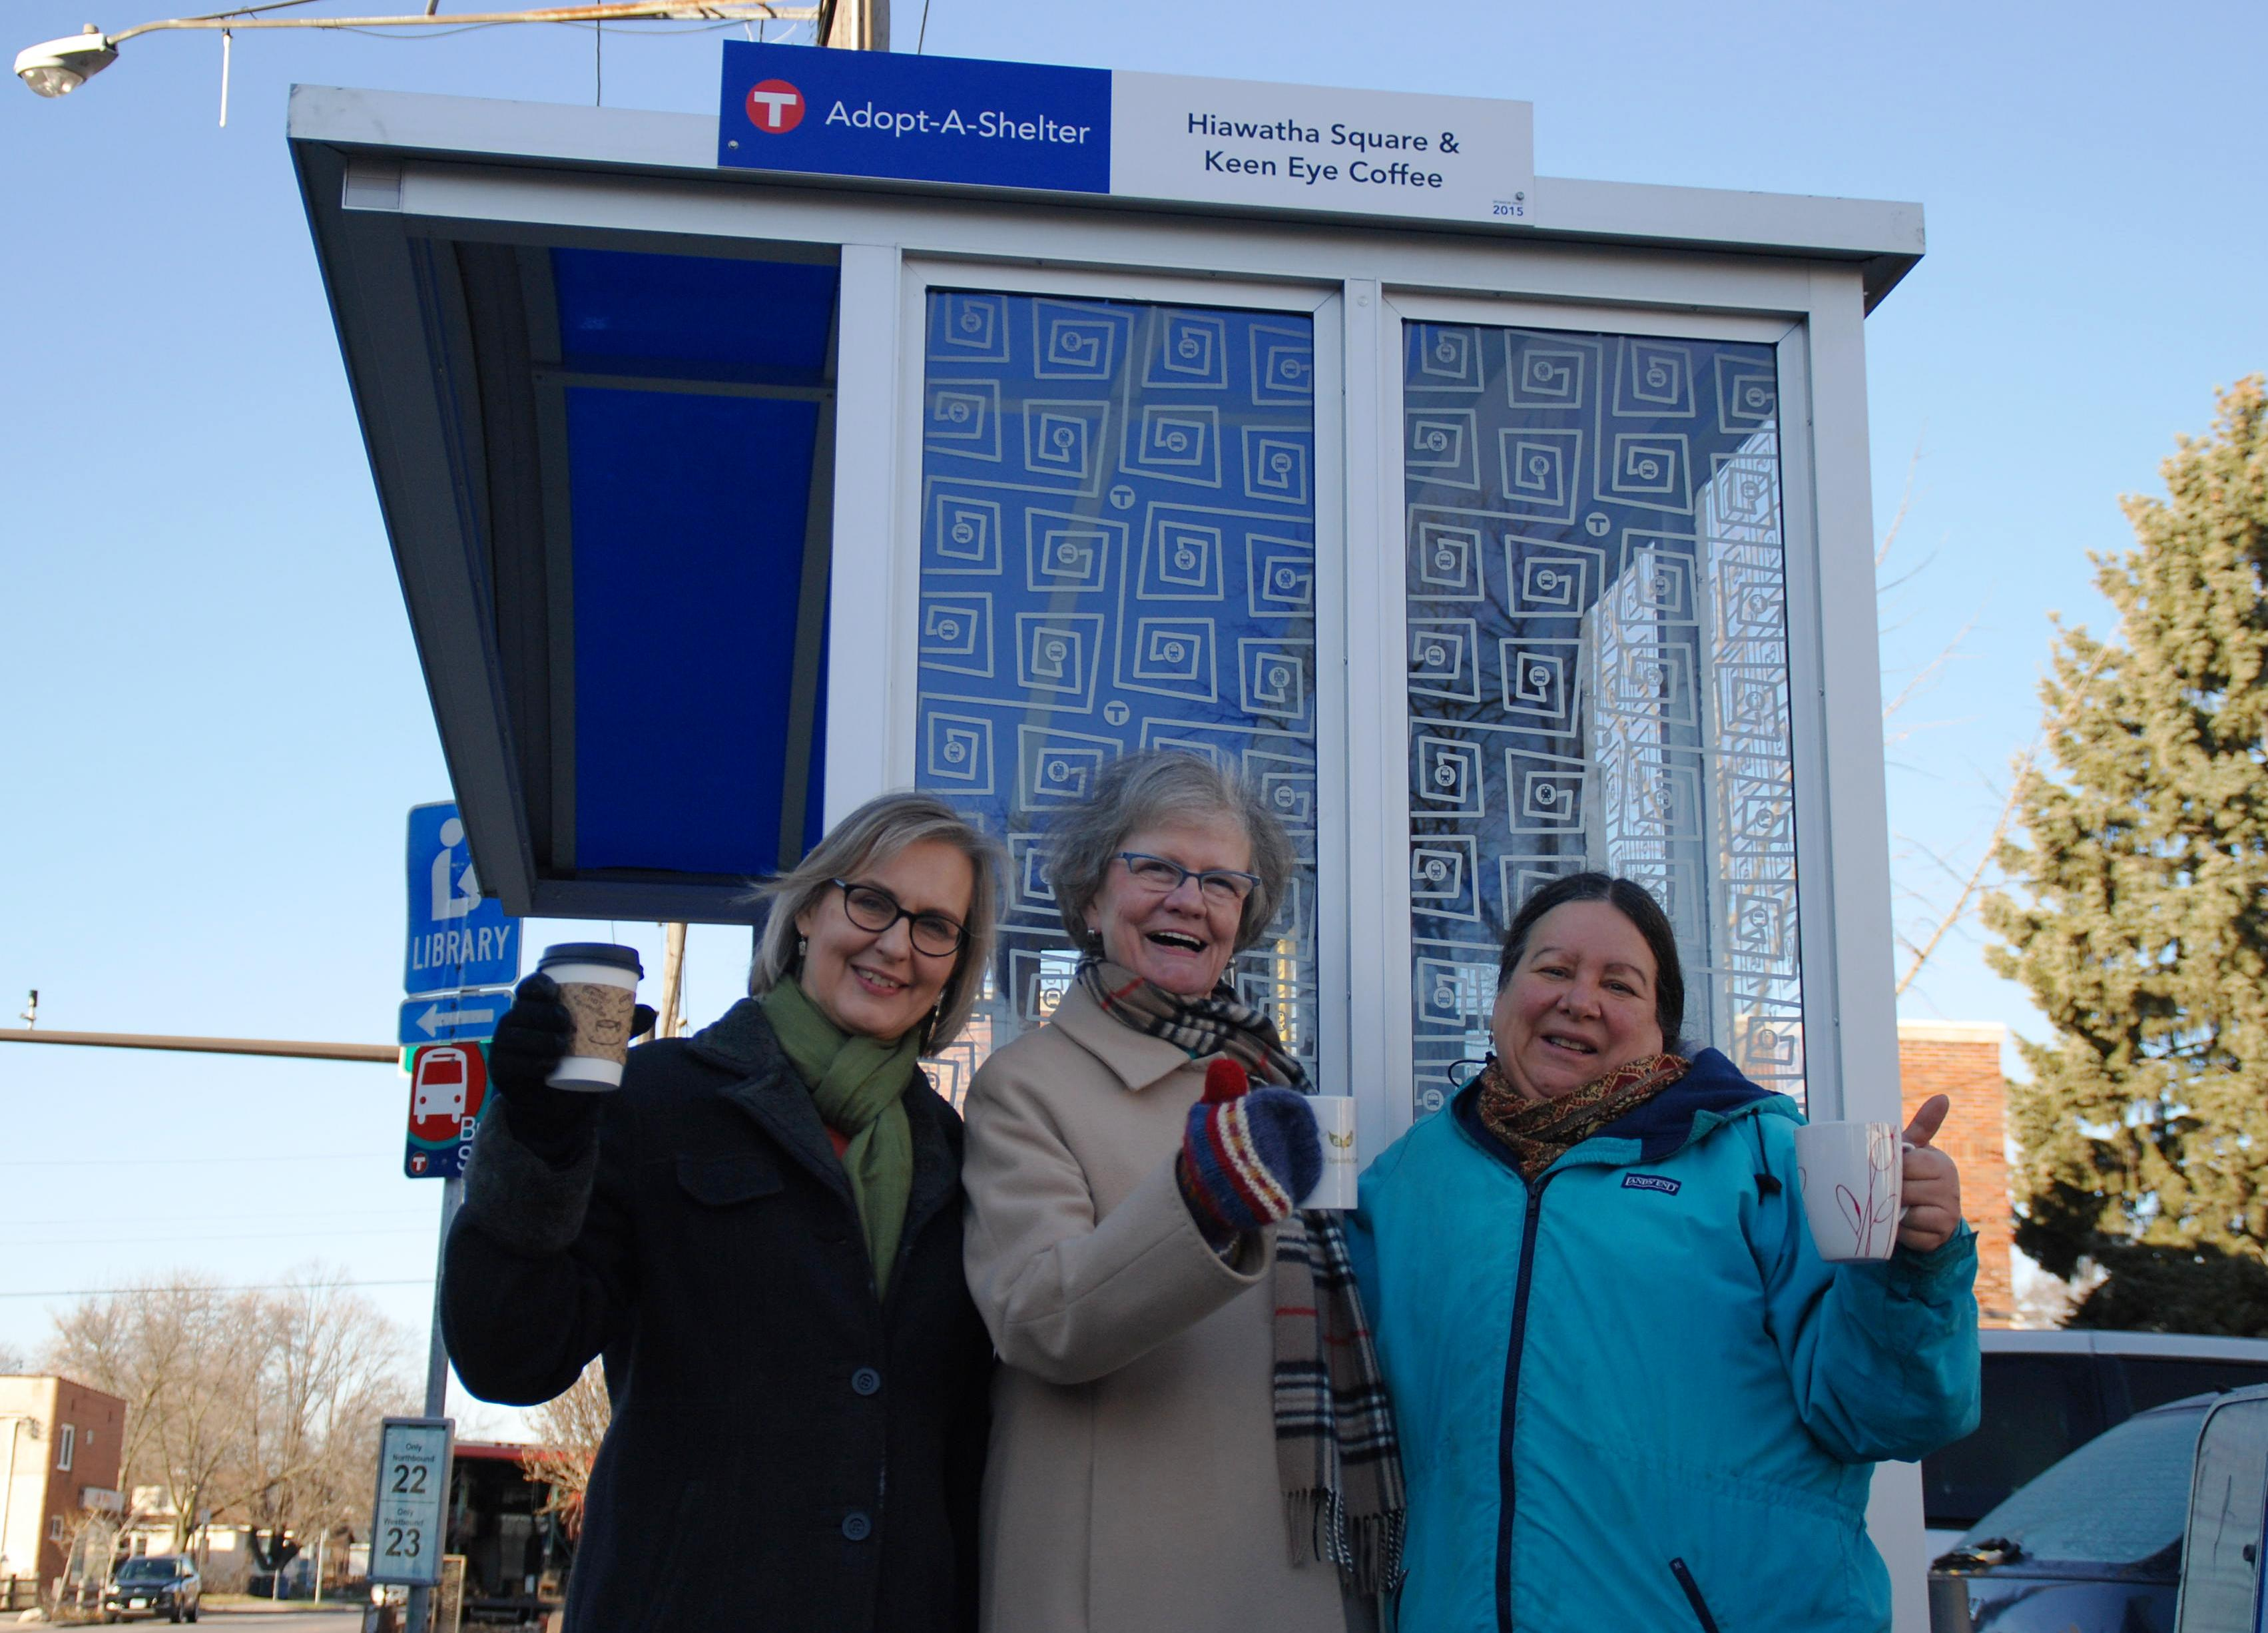 Ann Erickson, owner of Keen Eye Coffee, Doris Overby, a neighborhood block leader, and Francy Scurato, also a neighborhood block leader, with the shelter they adopted at the corner of East 38th Street and South 28th Avenue.